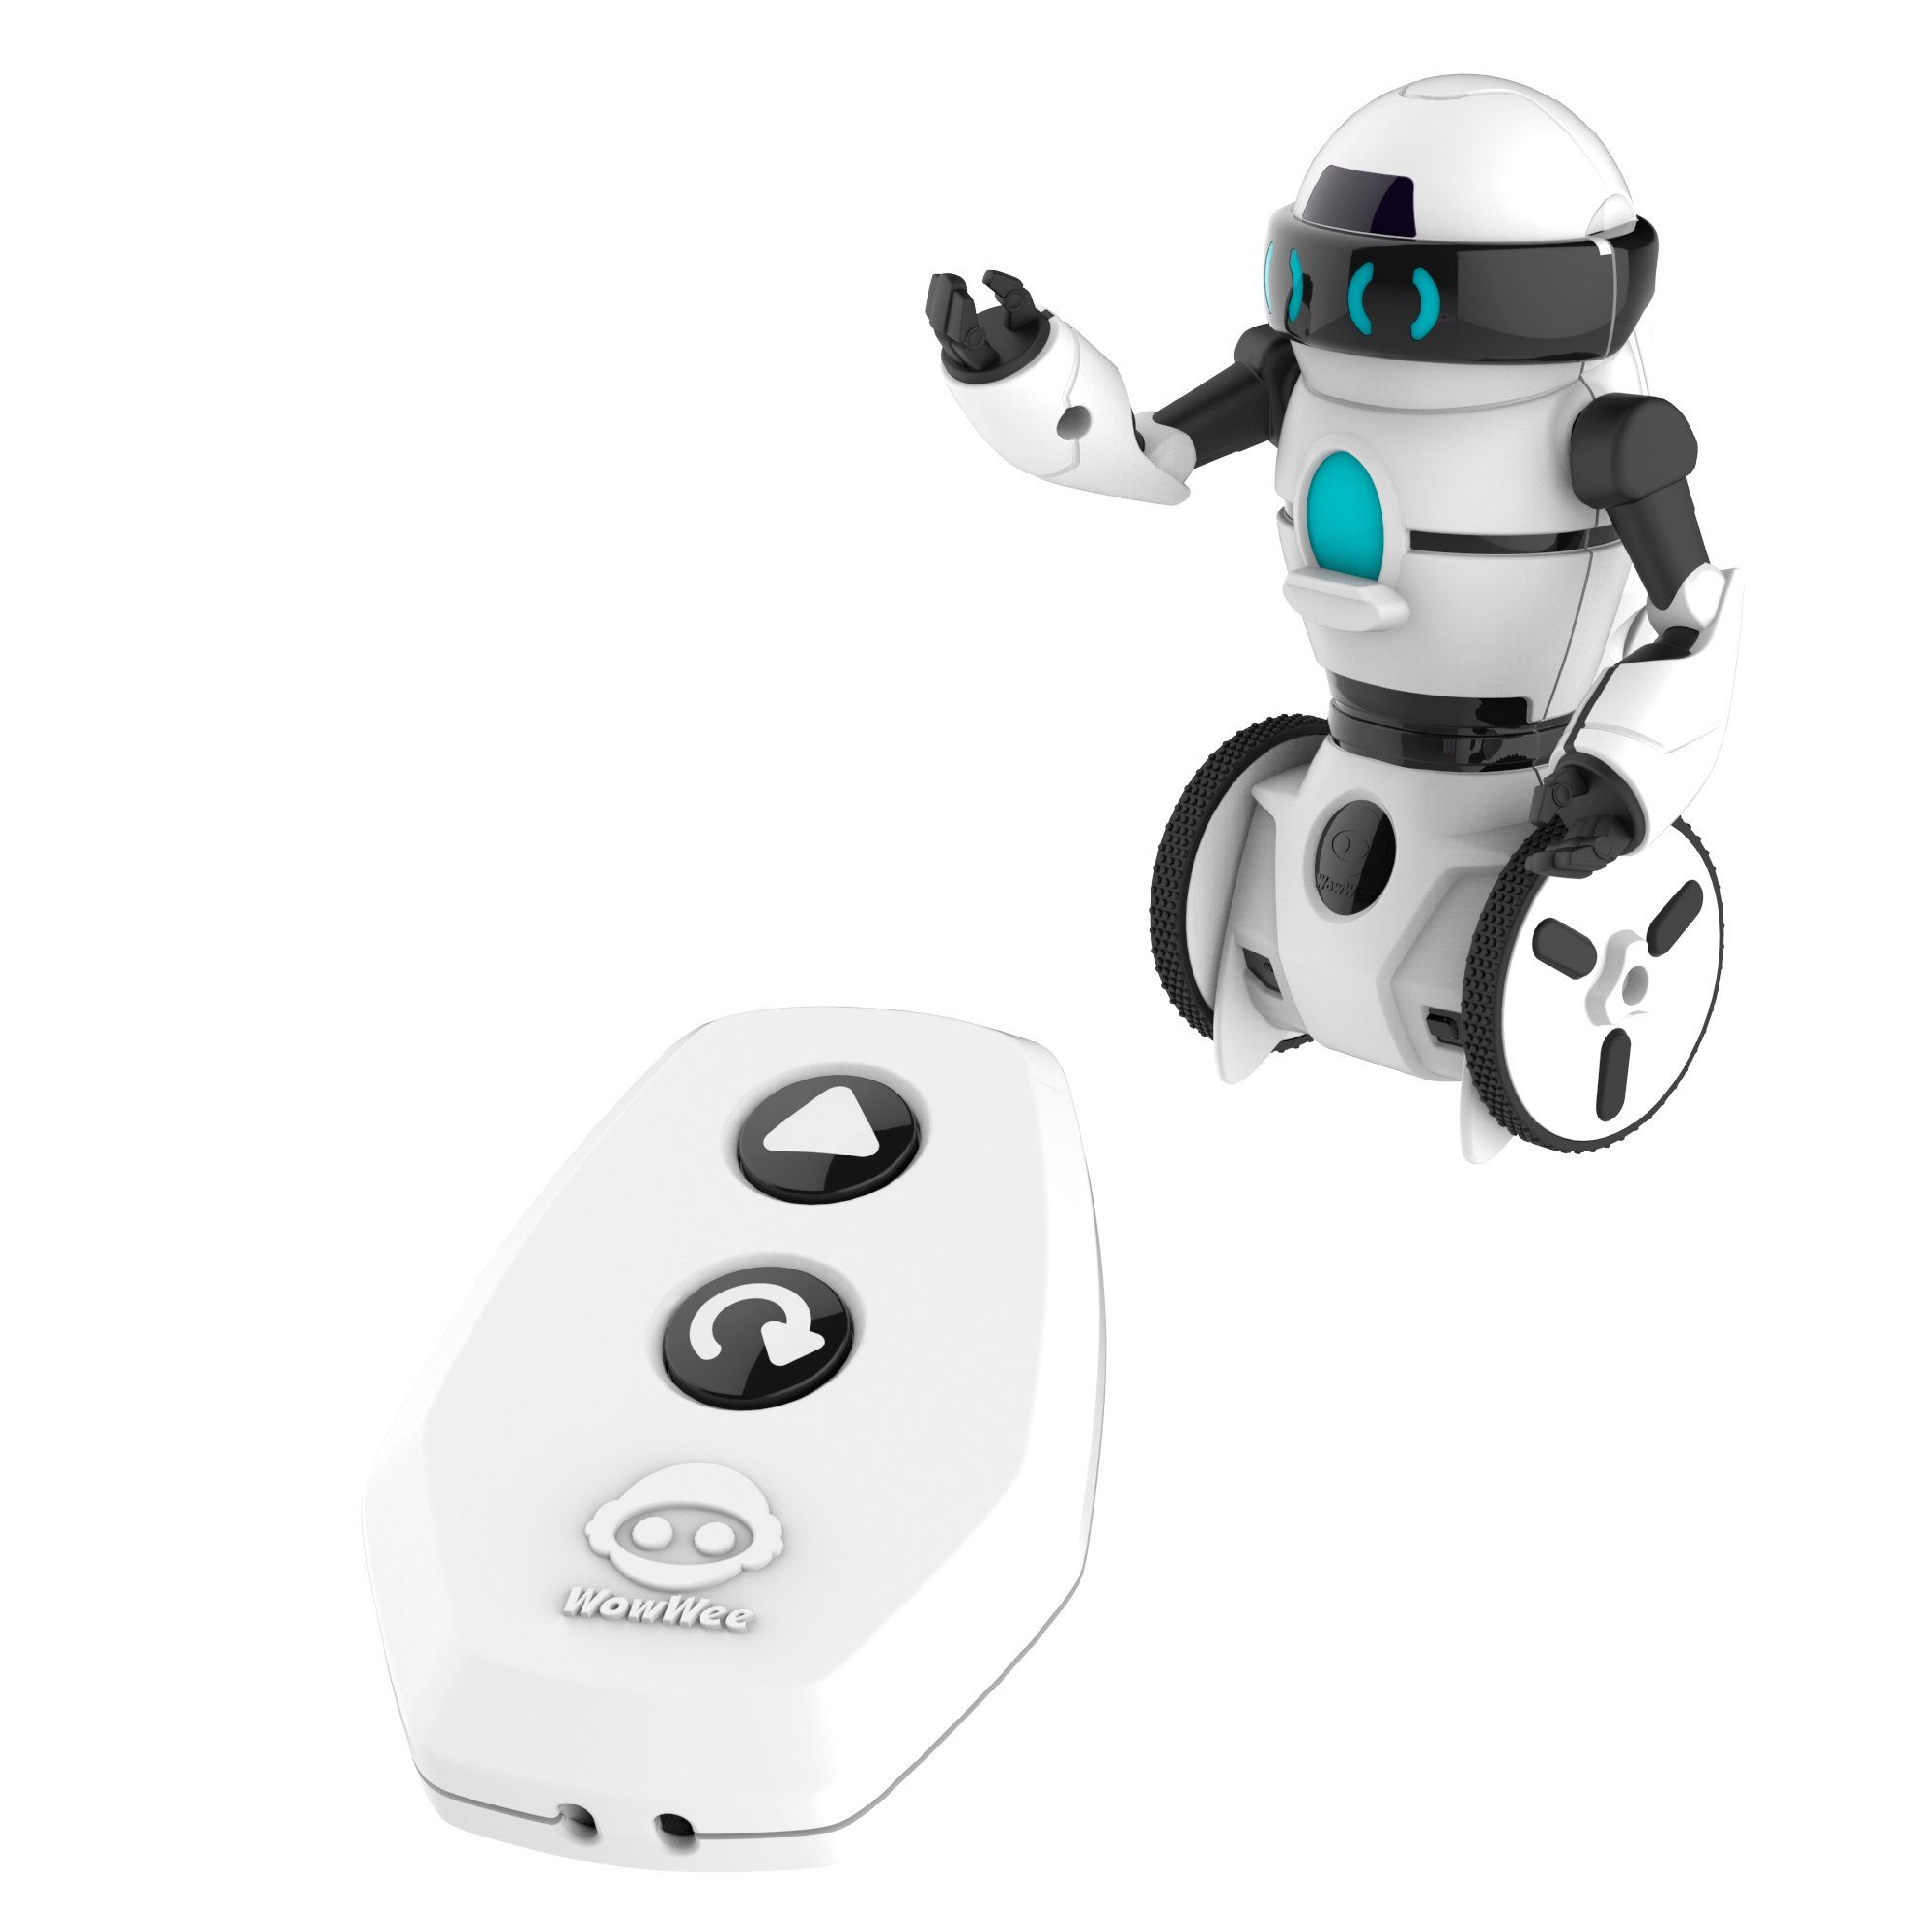 WowWee Mip RC Mini Edition Remote Control Robot by WowWee (Image #2)